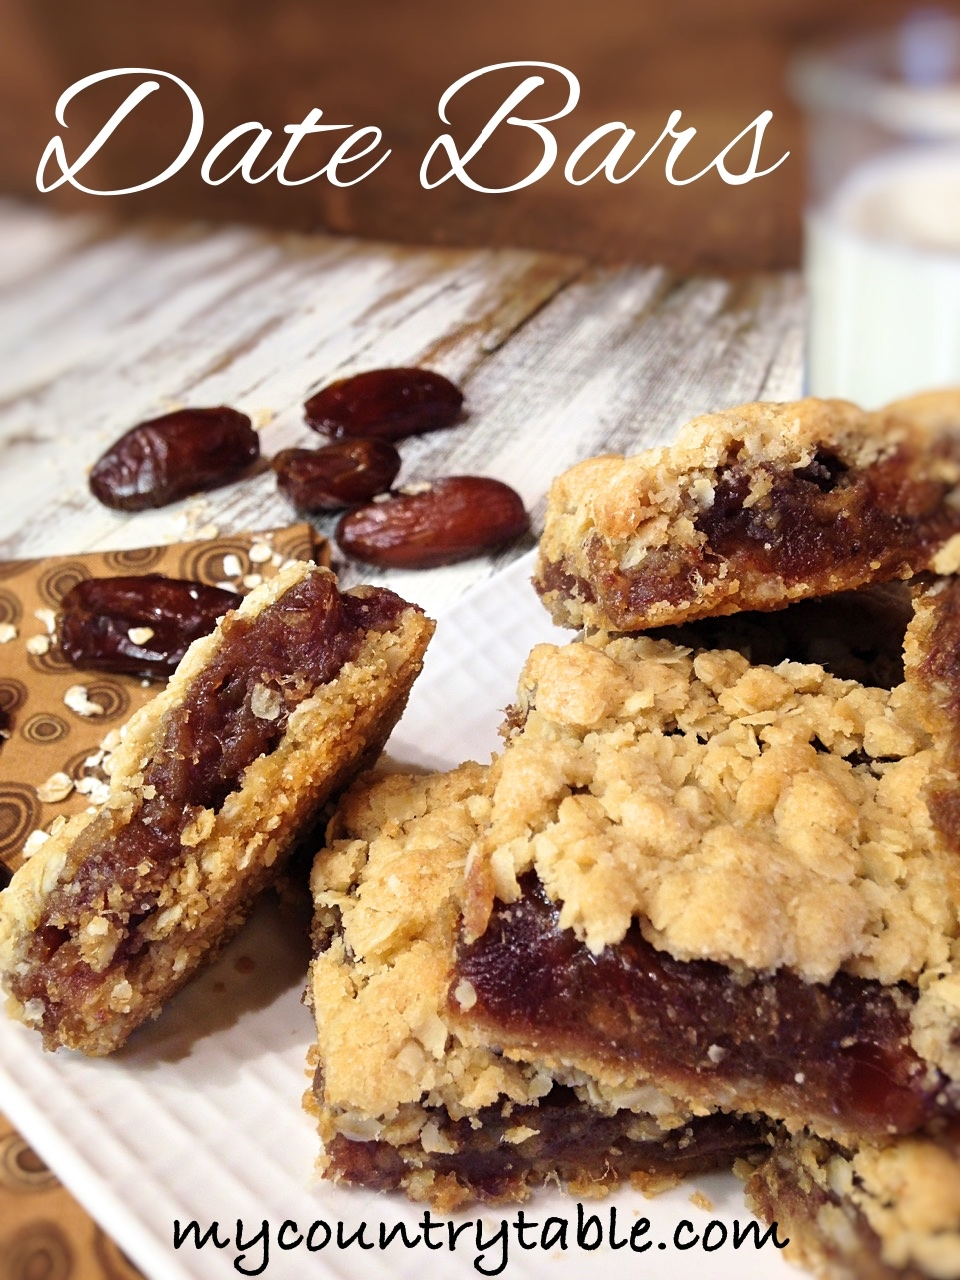 Date Bars My Country Table